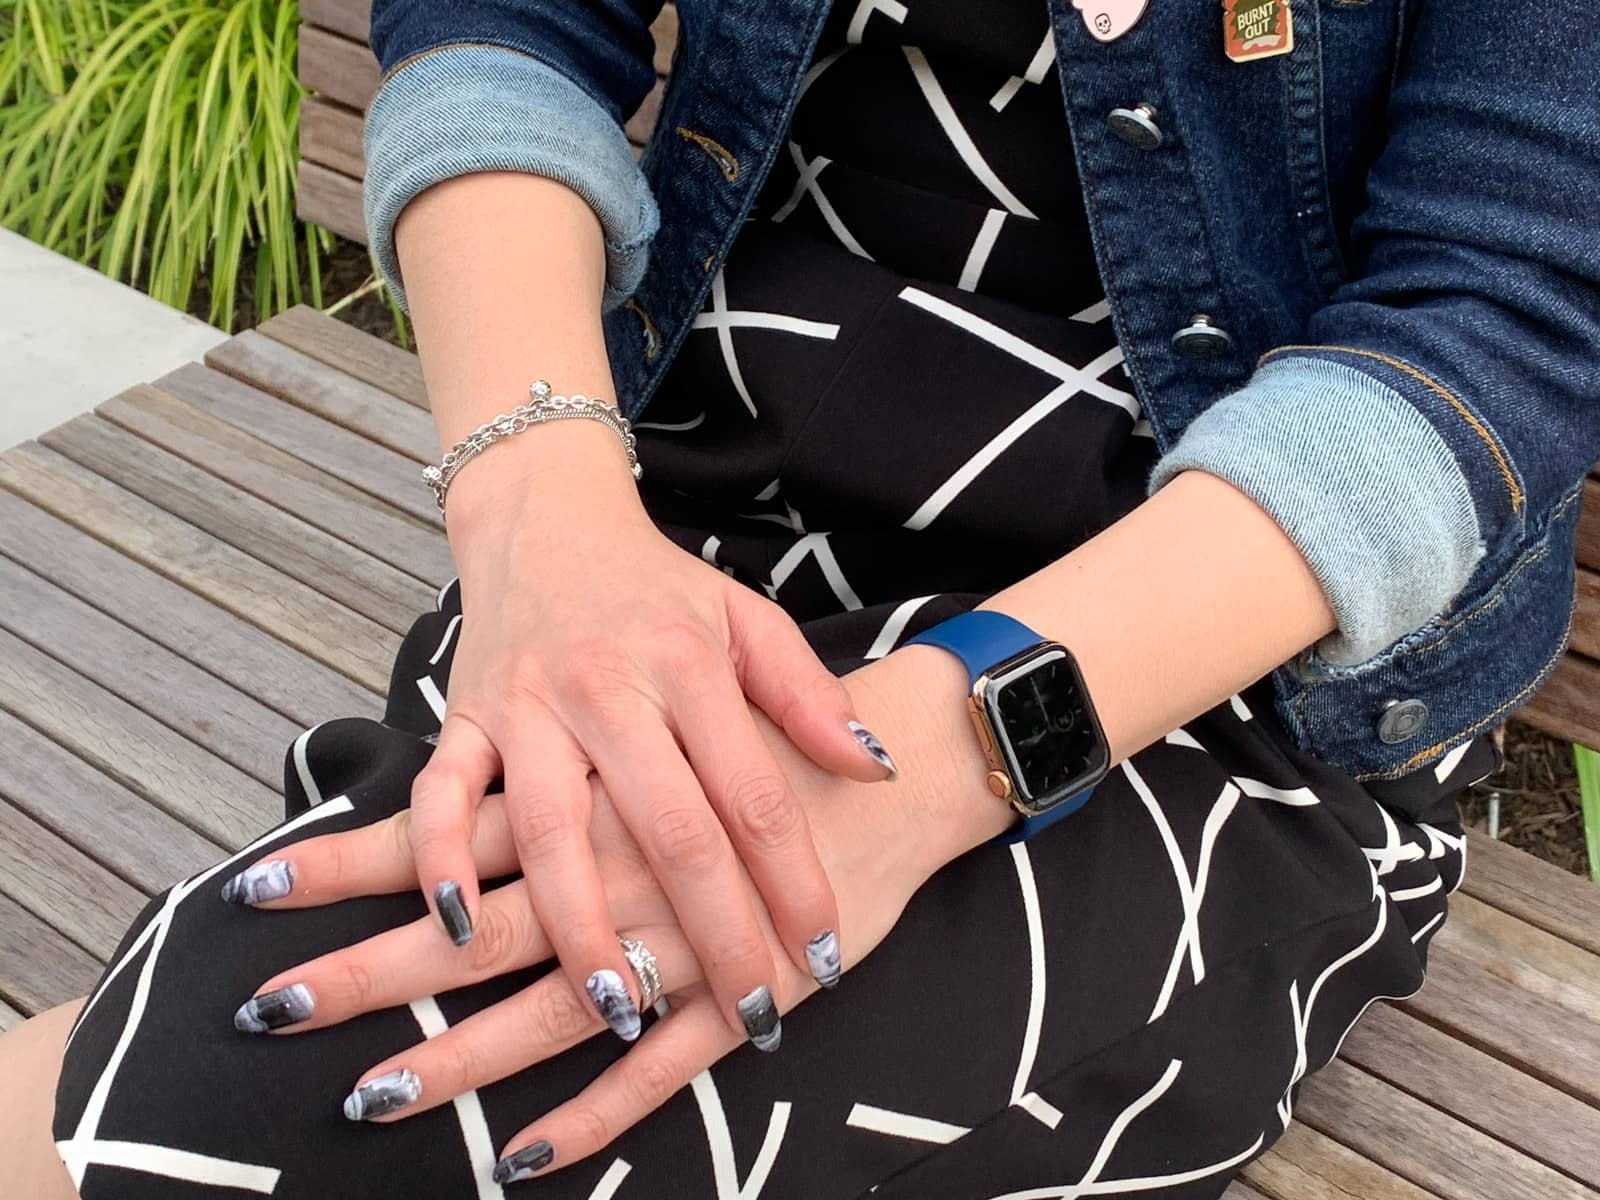 A close-up of a woman's hands, crossed over each other, on her knee. The woman's fingernails have black and white swirly nail art. She is wearing a blue watch on one wrist and a couple of bracelets on the other. She is wearing a black jumpsuit with white geometric lines on it.